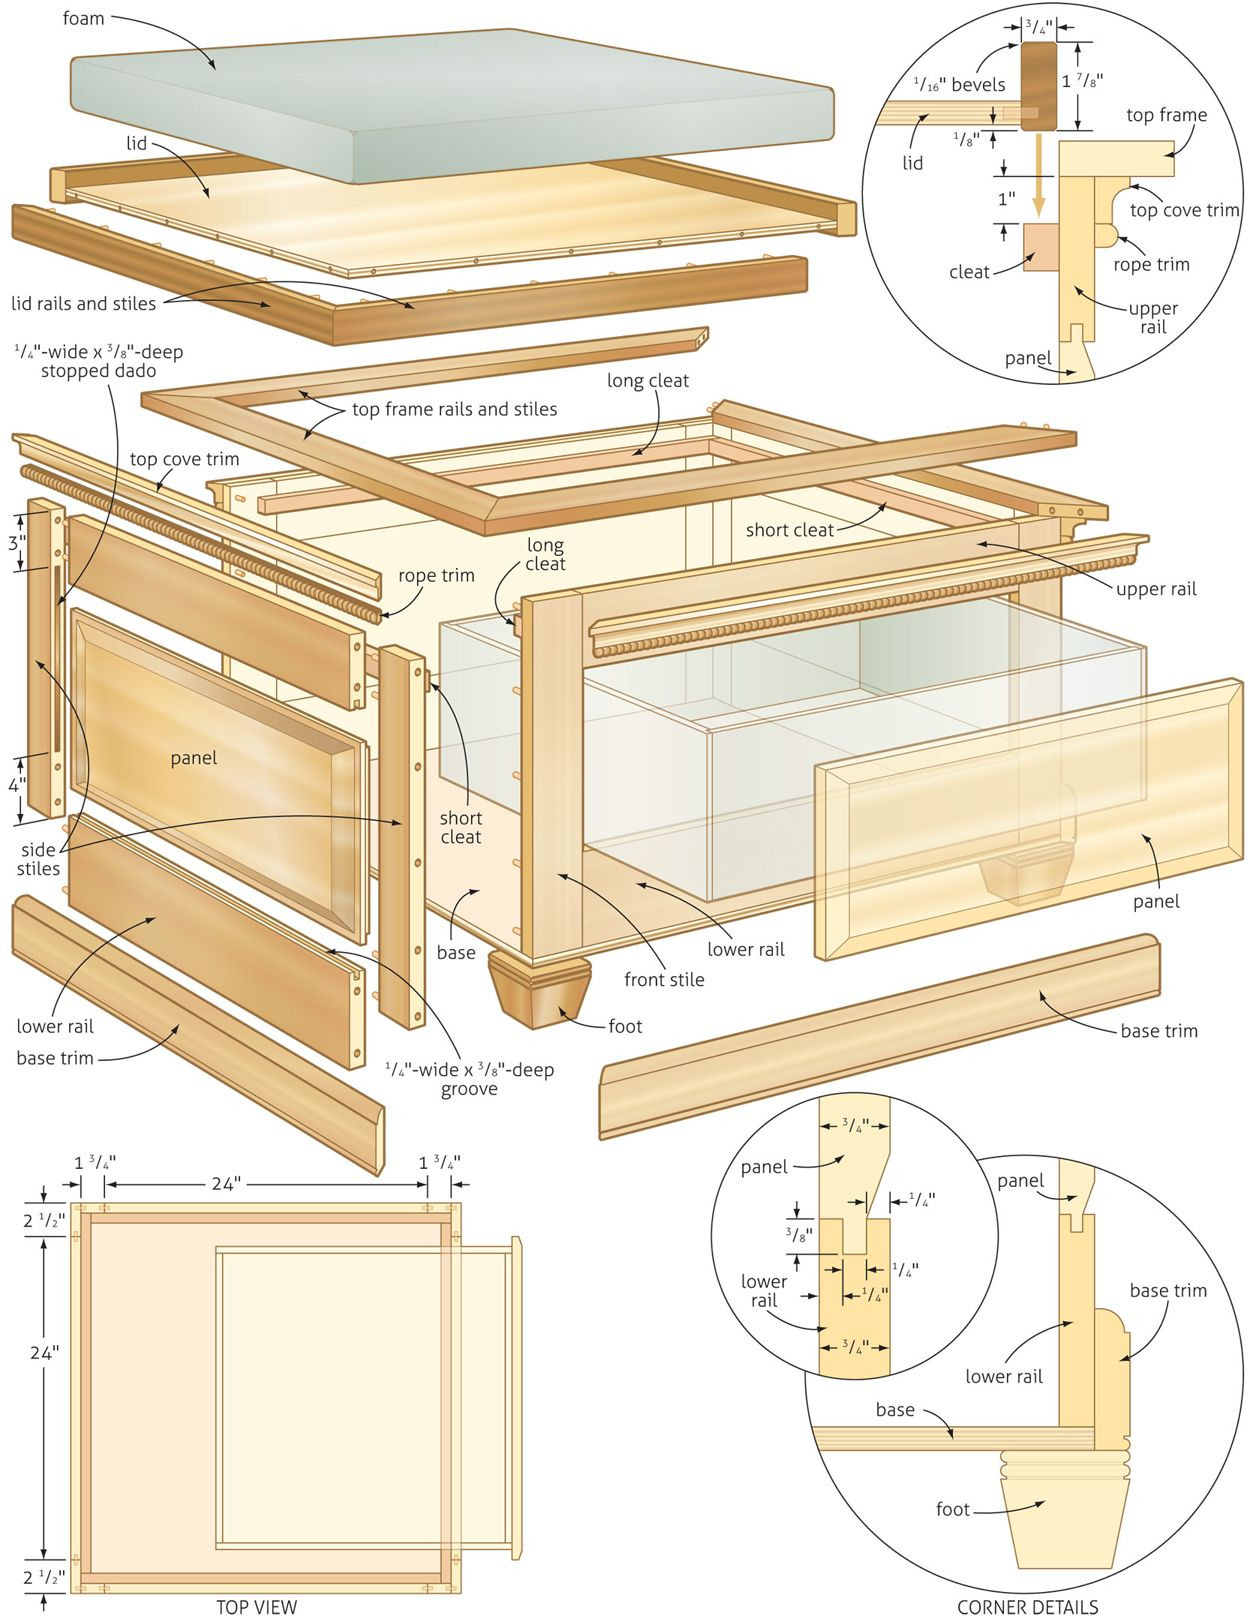 Gun Coffee Table Plans Unique Beds and if You Re A Devotee Of the 3rs In Design Reuse but